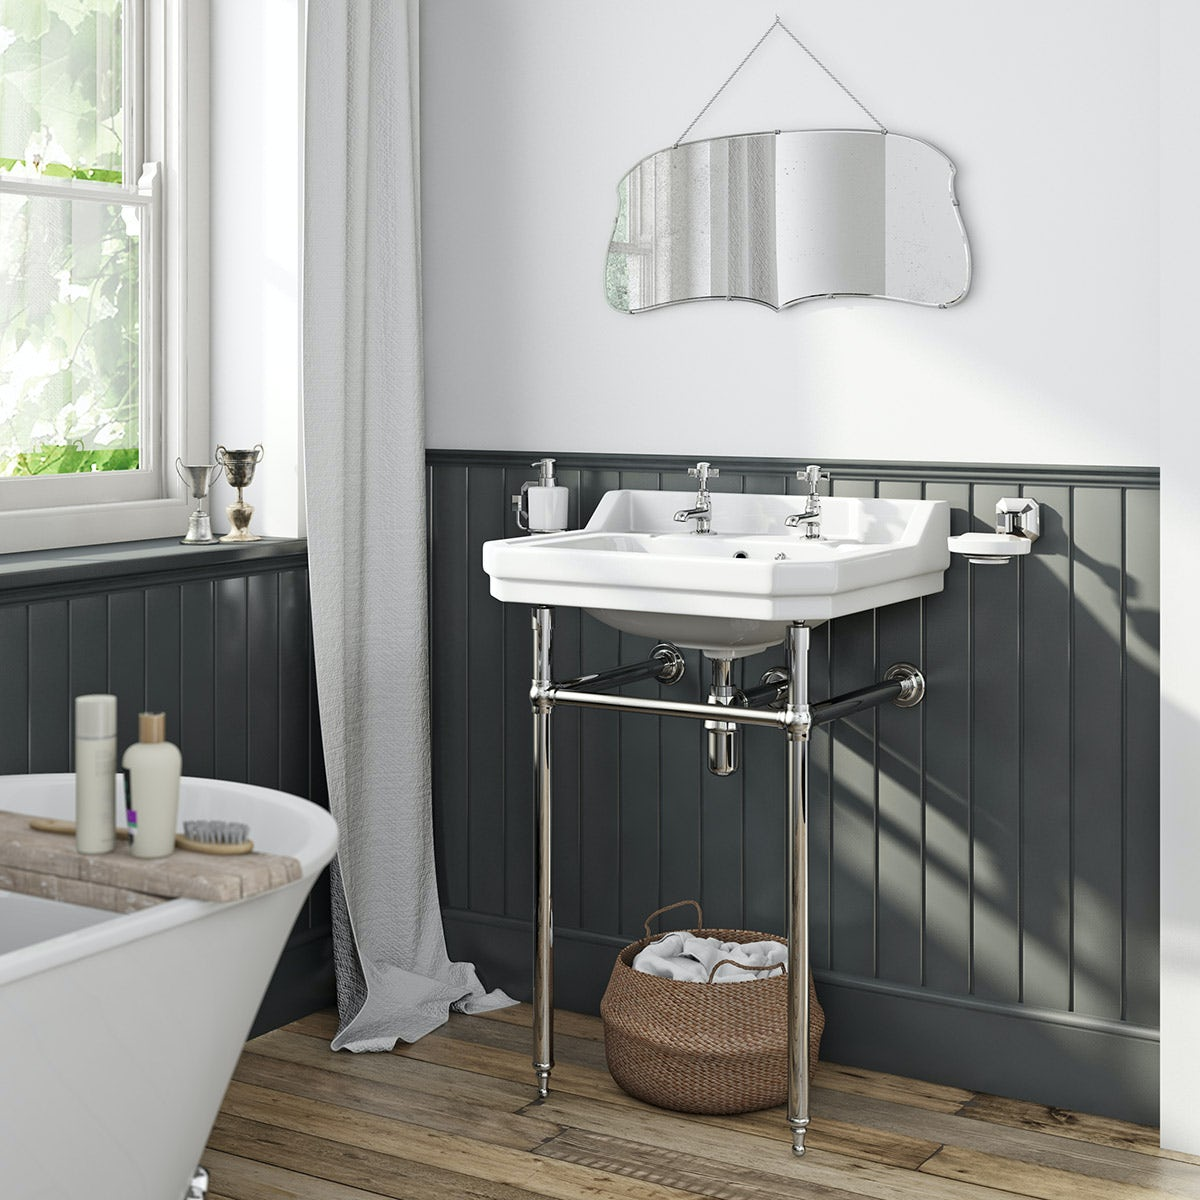 Best 25 Gray Bathroom Paint Ideas On Pinterest: Craig Rose Earl Grey Kitchen Bathroom Paint 2.5L